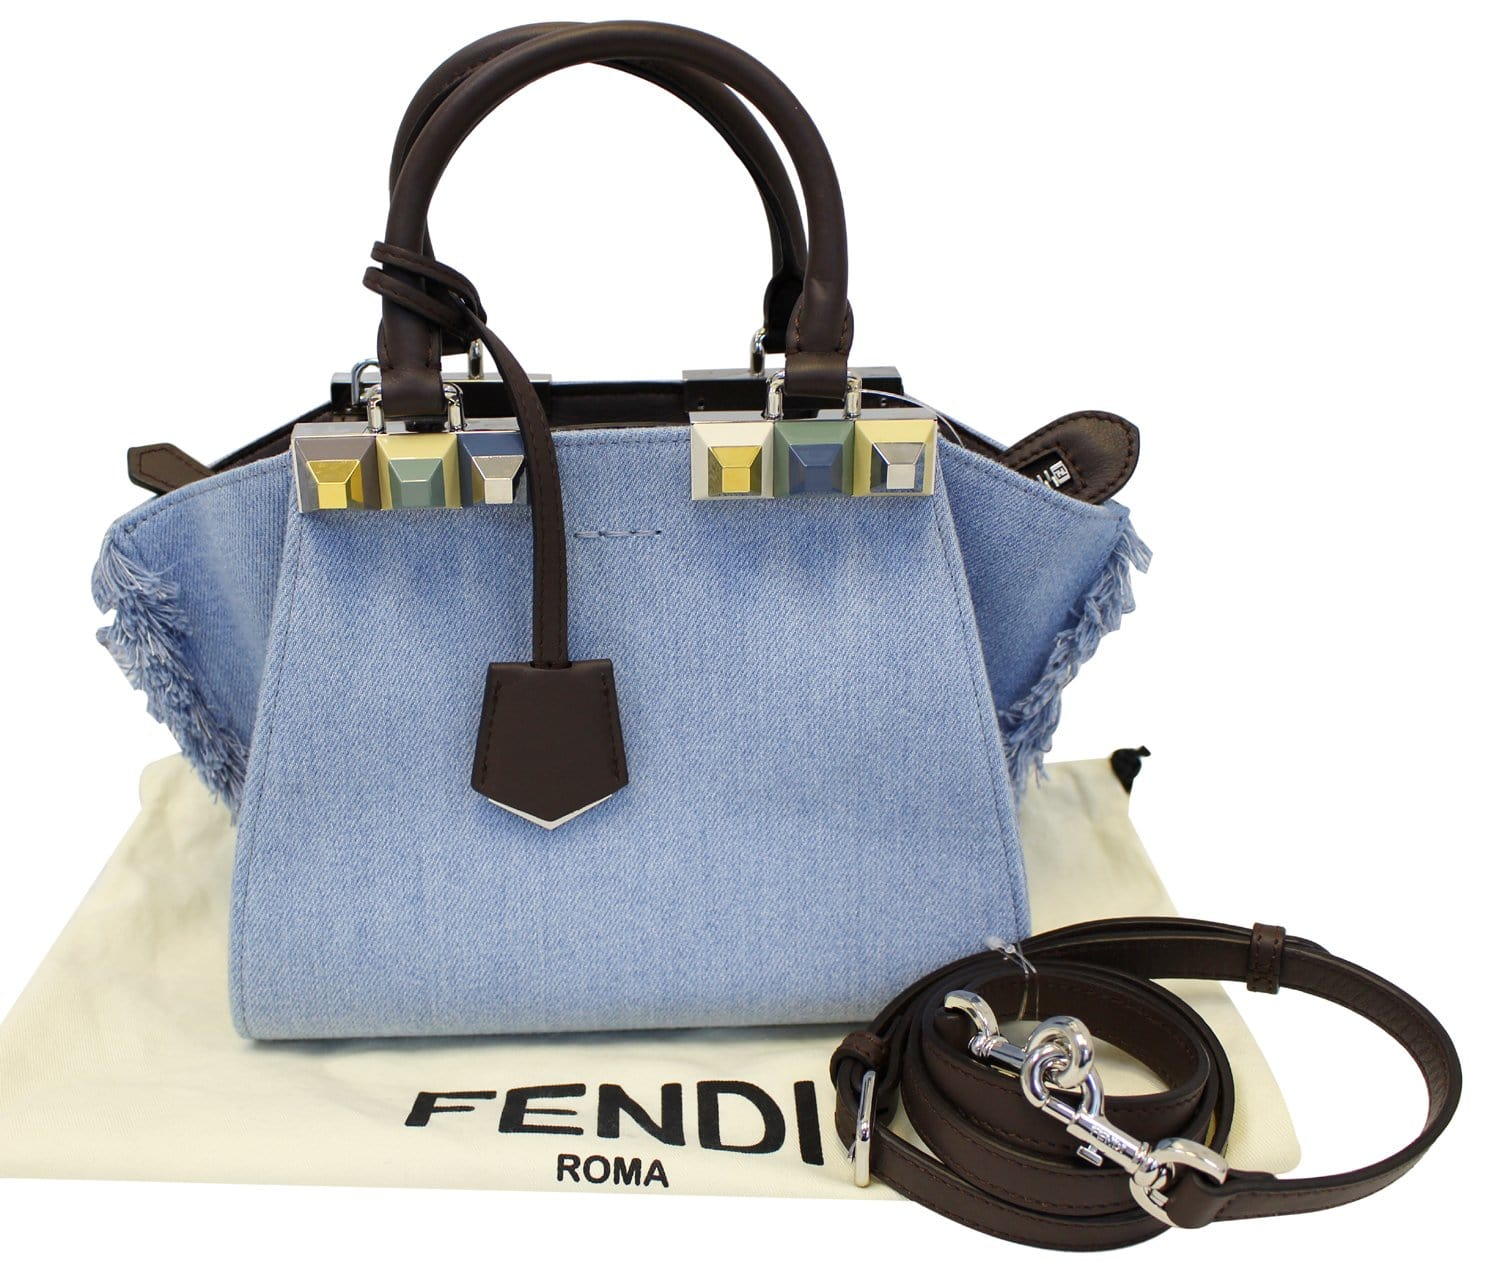 5302fabead11 FENDI 3 Jour Mini Fringed Denim Studs Tote Crossbody Bag - Final Call